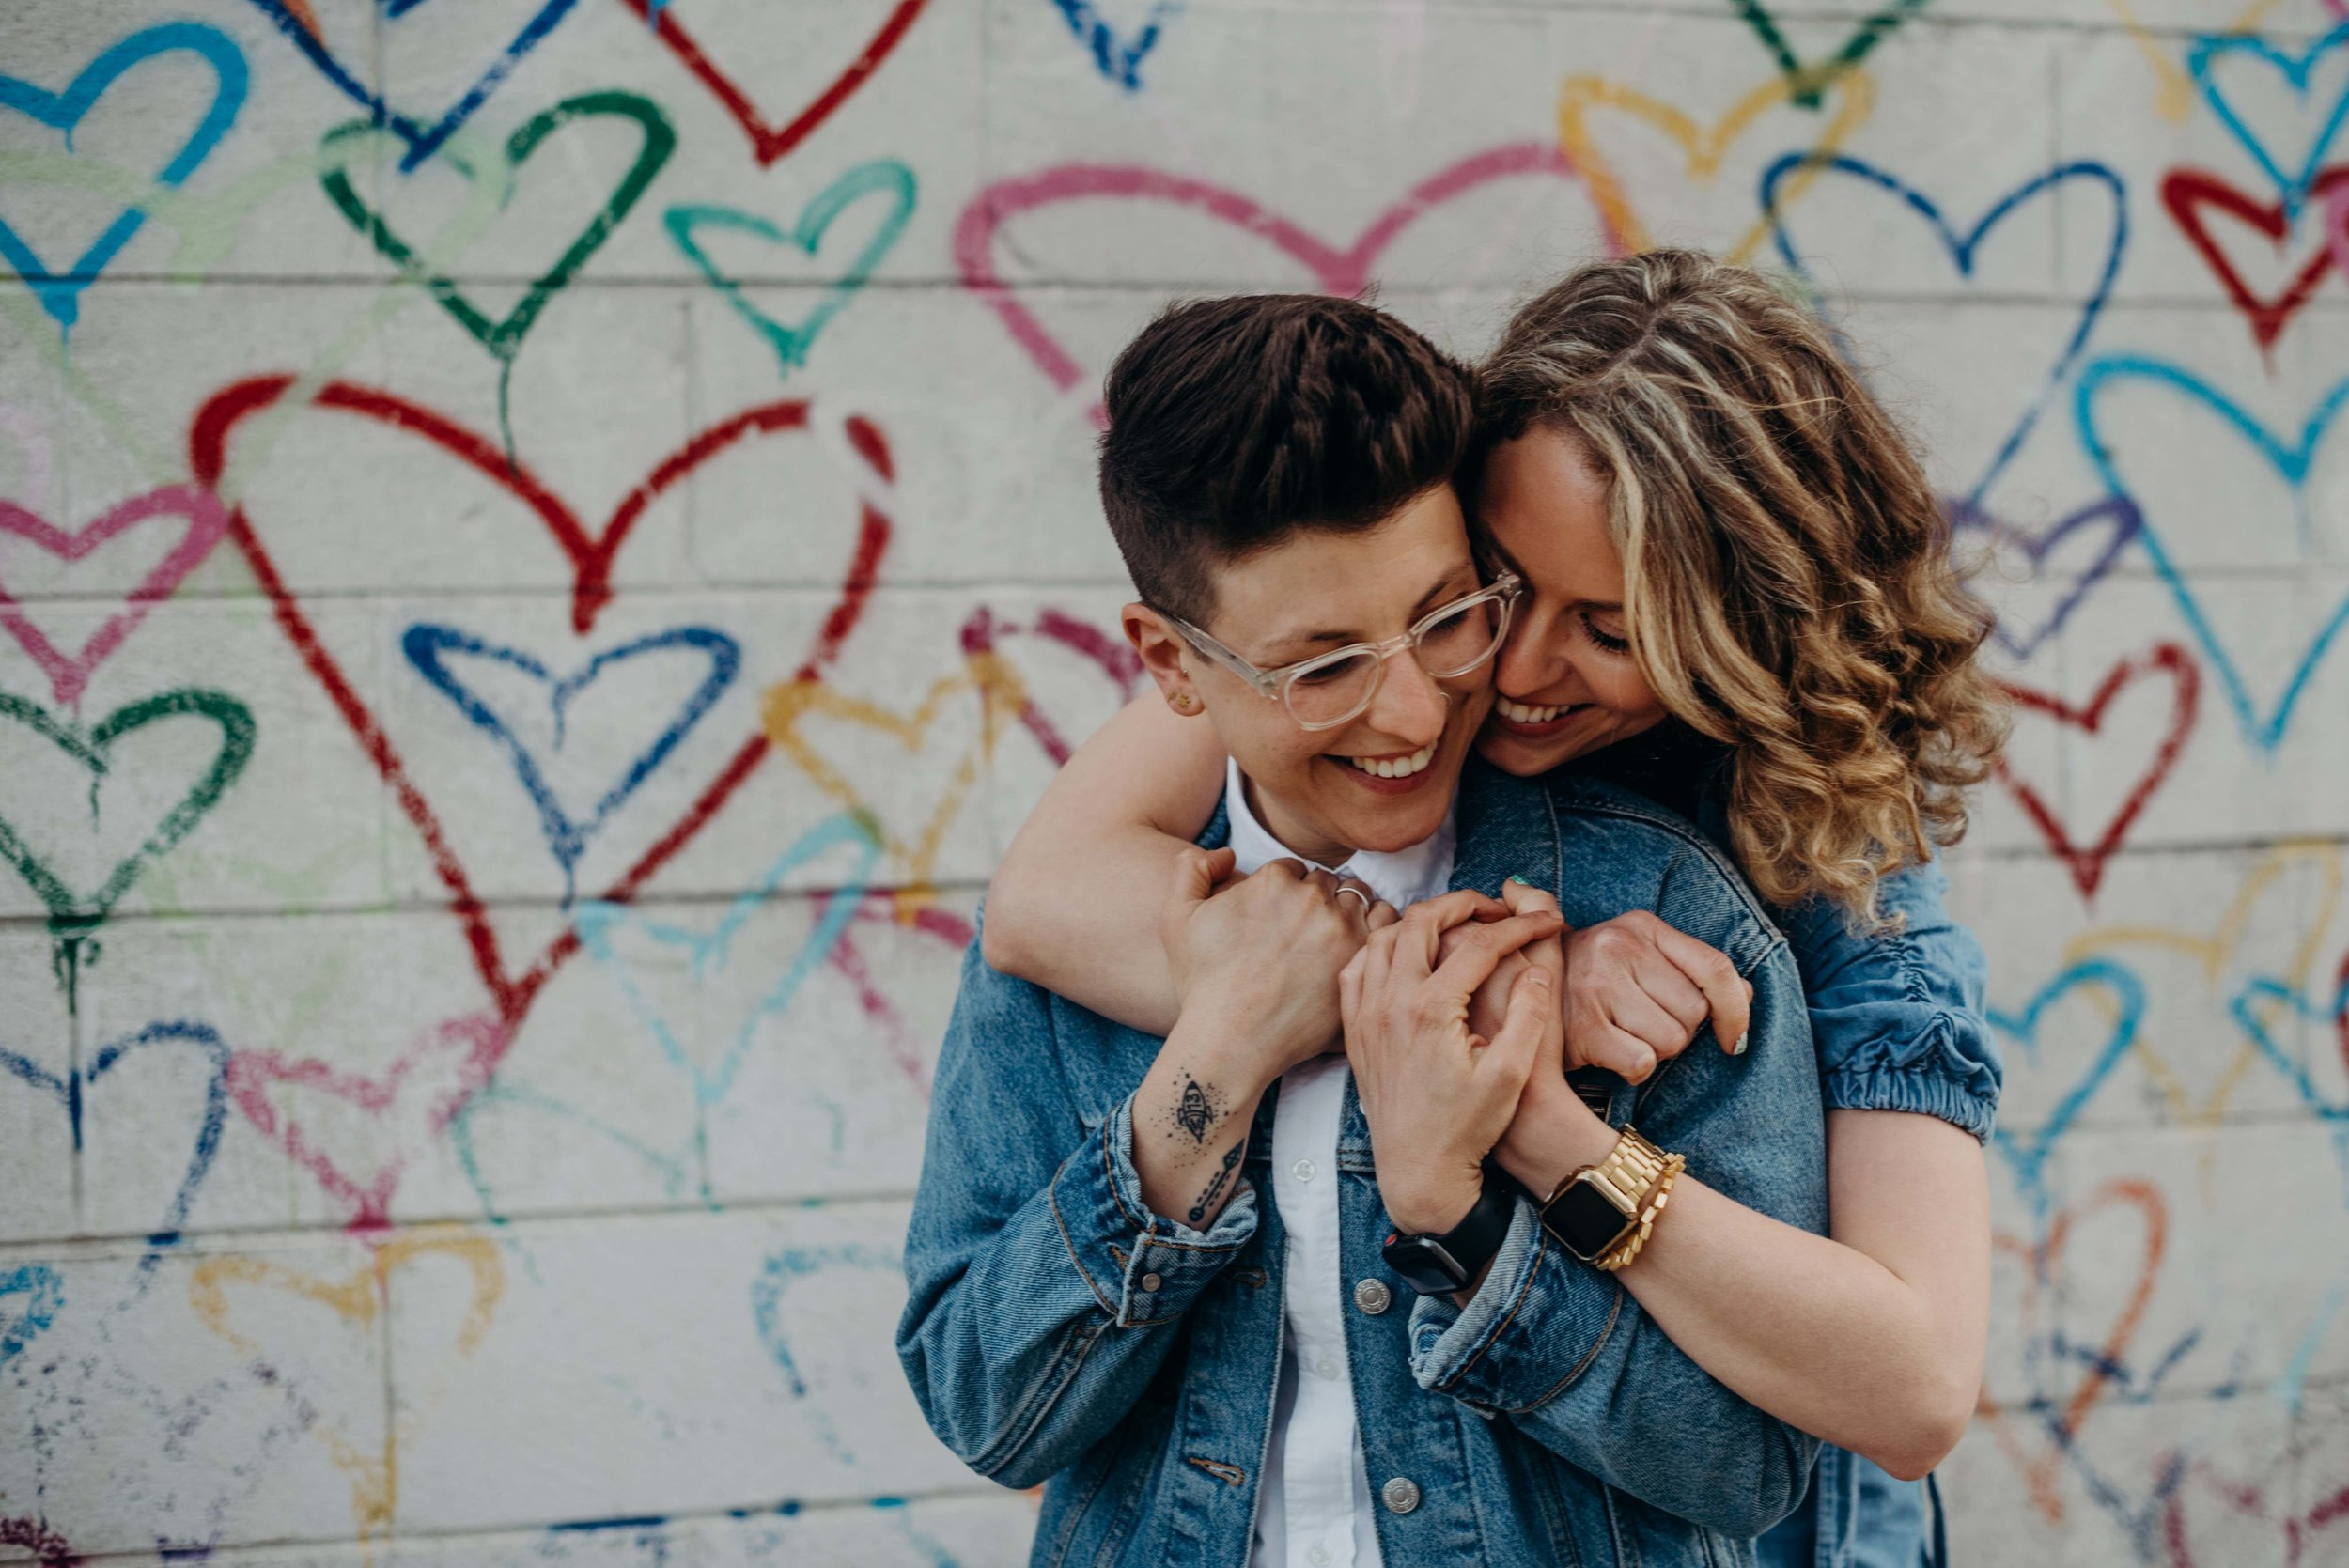 documenting your love story - Engagements, anniversaries, adventures with your main squeeze, and just because